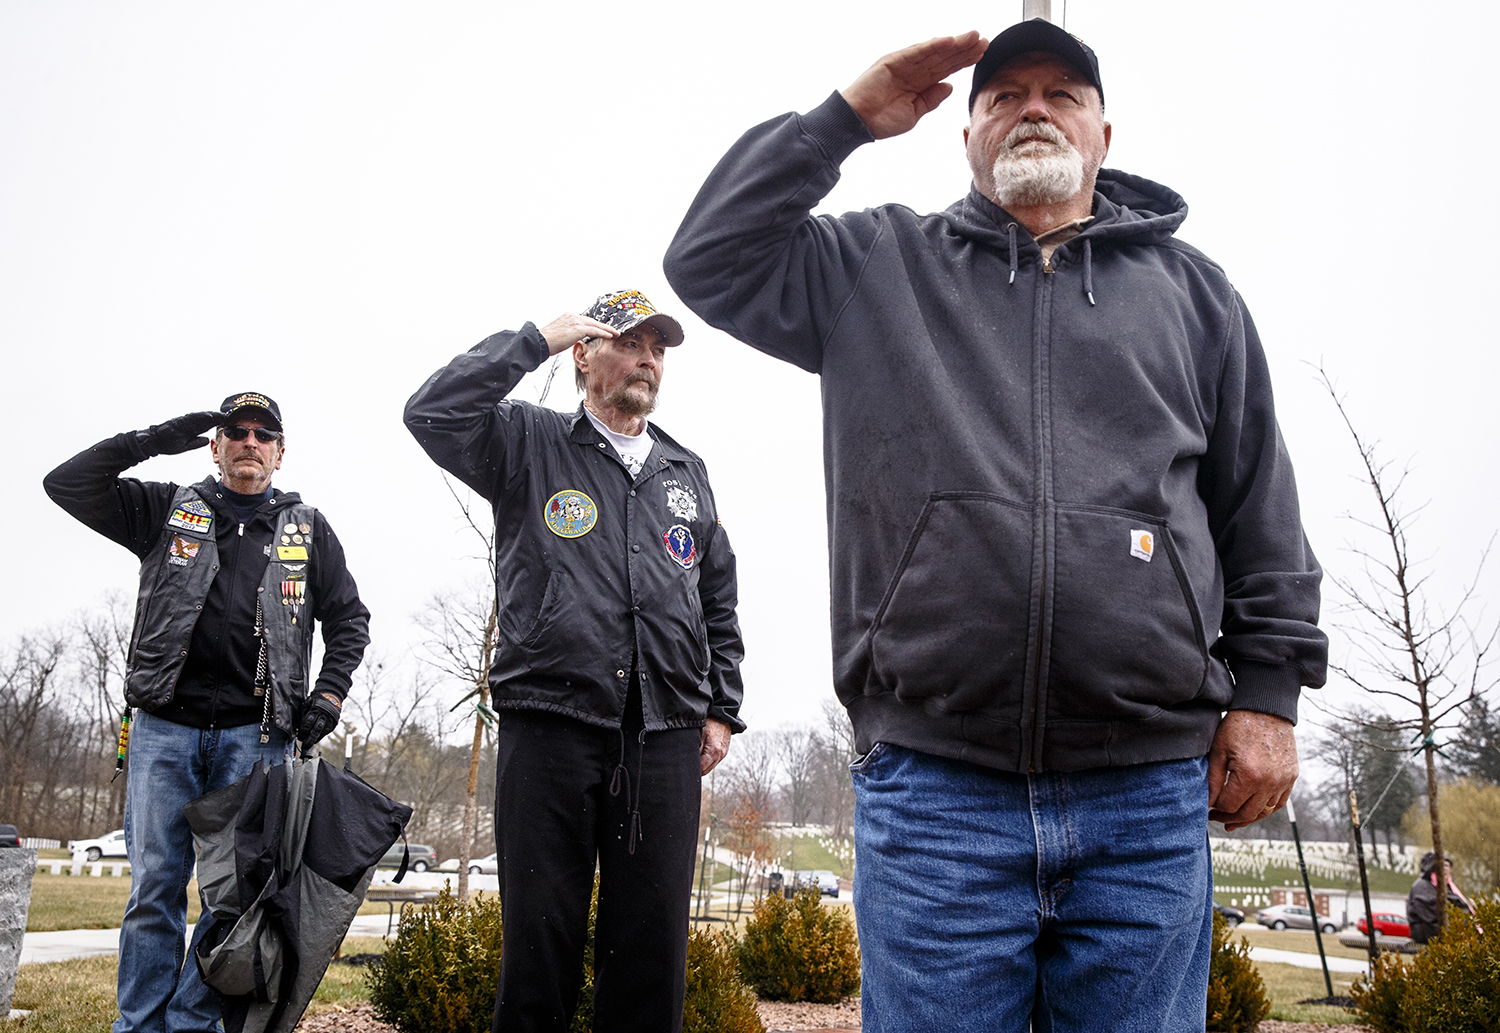 Vietnam veterans Steve Stout, left, Gene Walker, center, and Ben Beard, right, salute during the posting of the colors  for the Vietnam War Commemoration Ceremony at Camp Butler National Cemetery, Thursday, March 29, 2018, in Springfield, Ill. [Justin L. Fowler/The State Journal-Register]